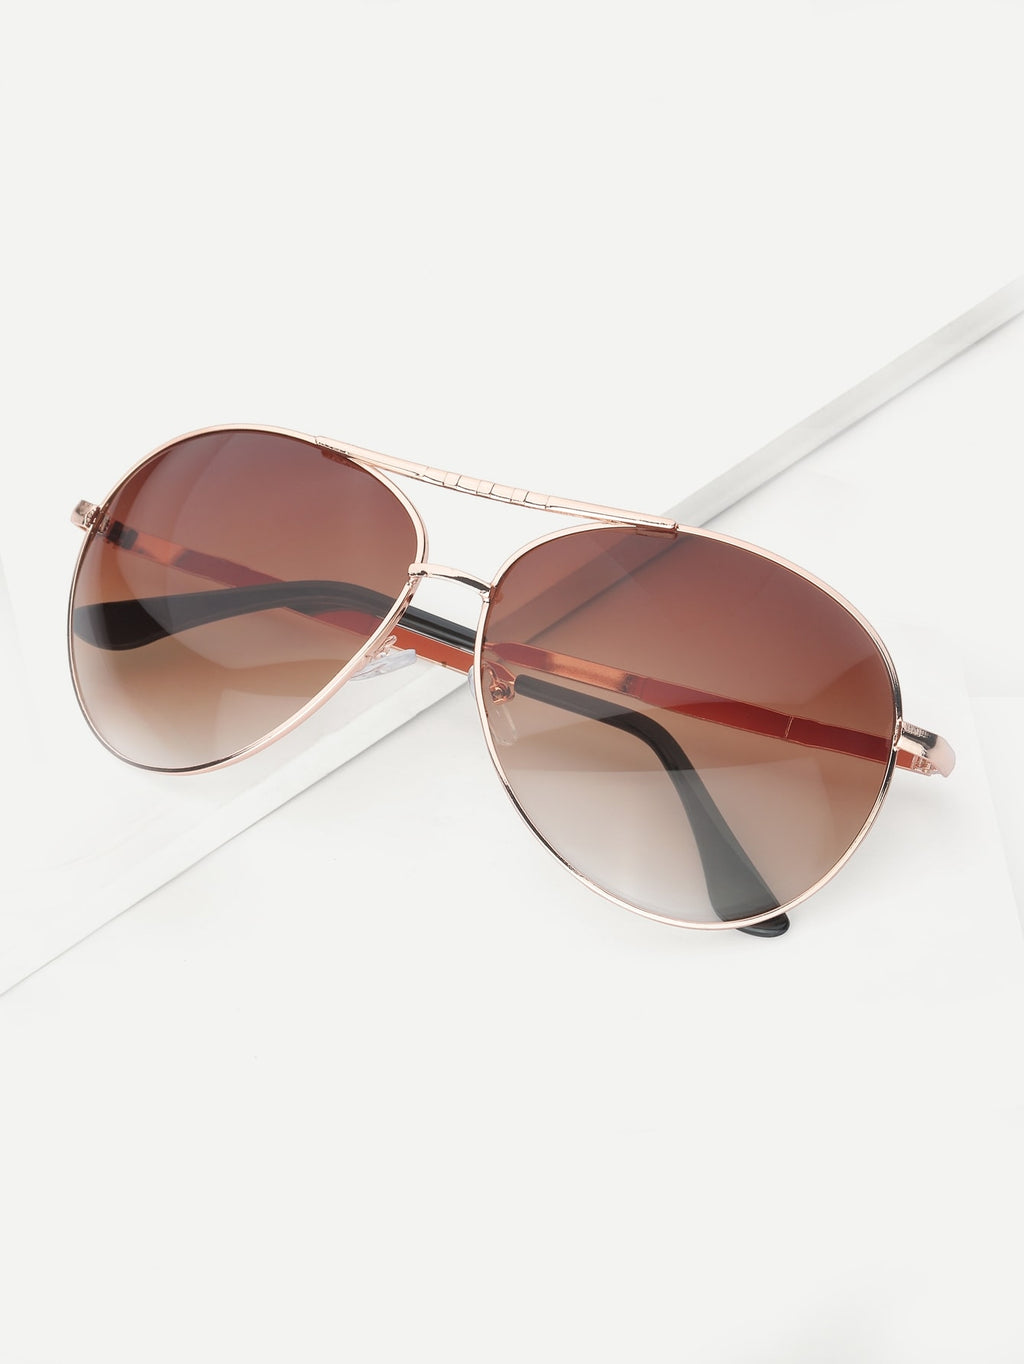 Men's Sunglasses - Double Bridge Sunglasses